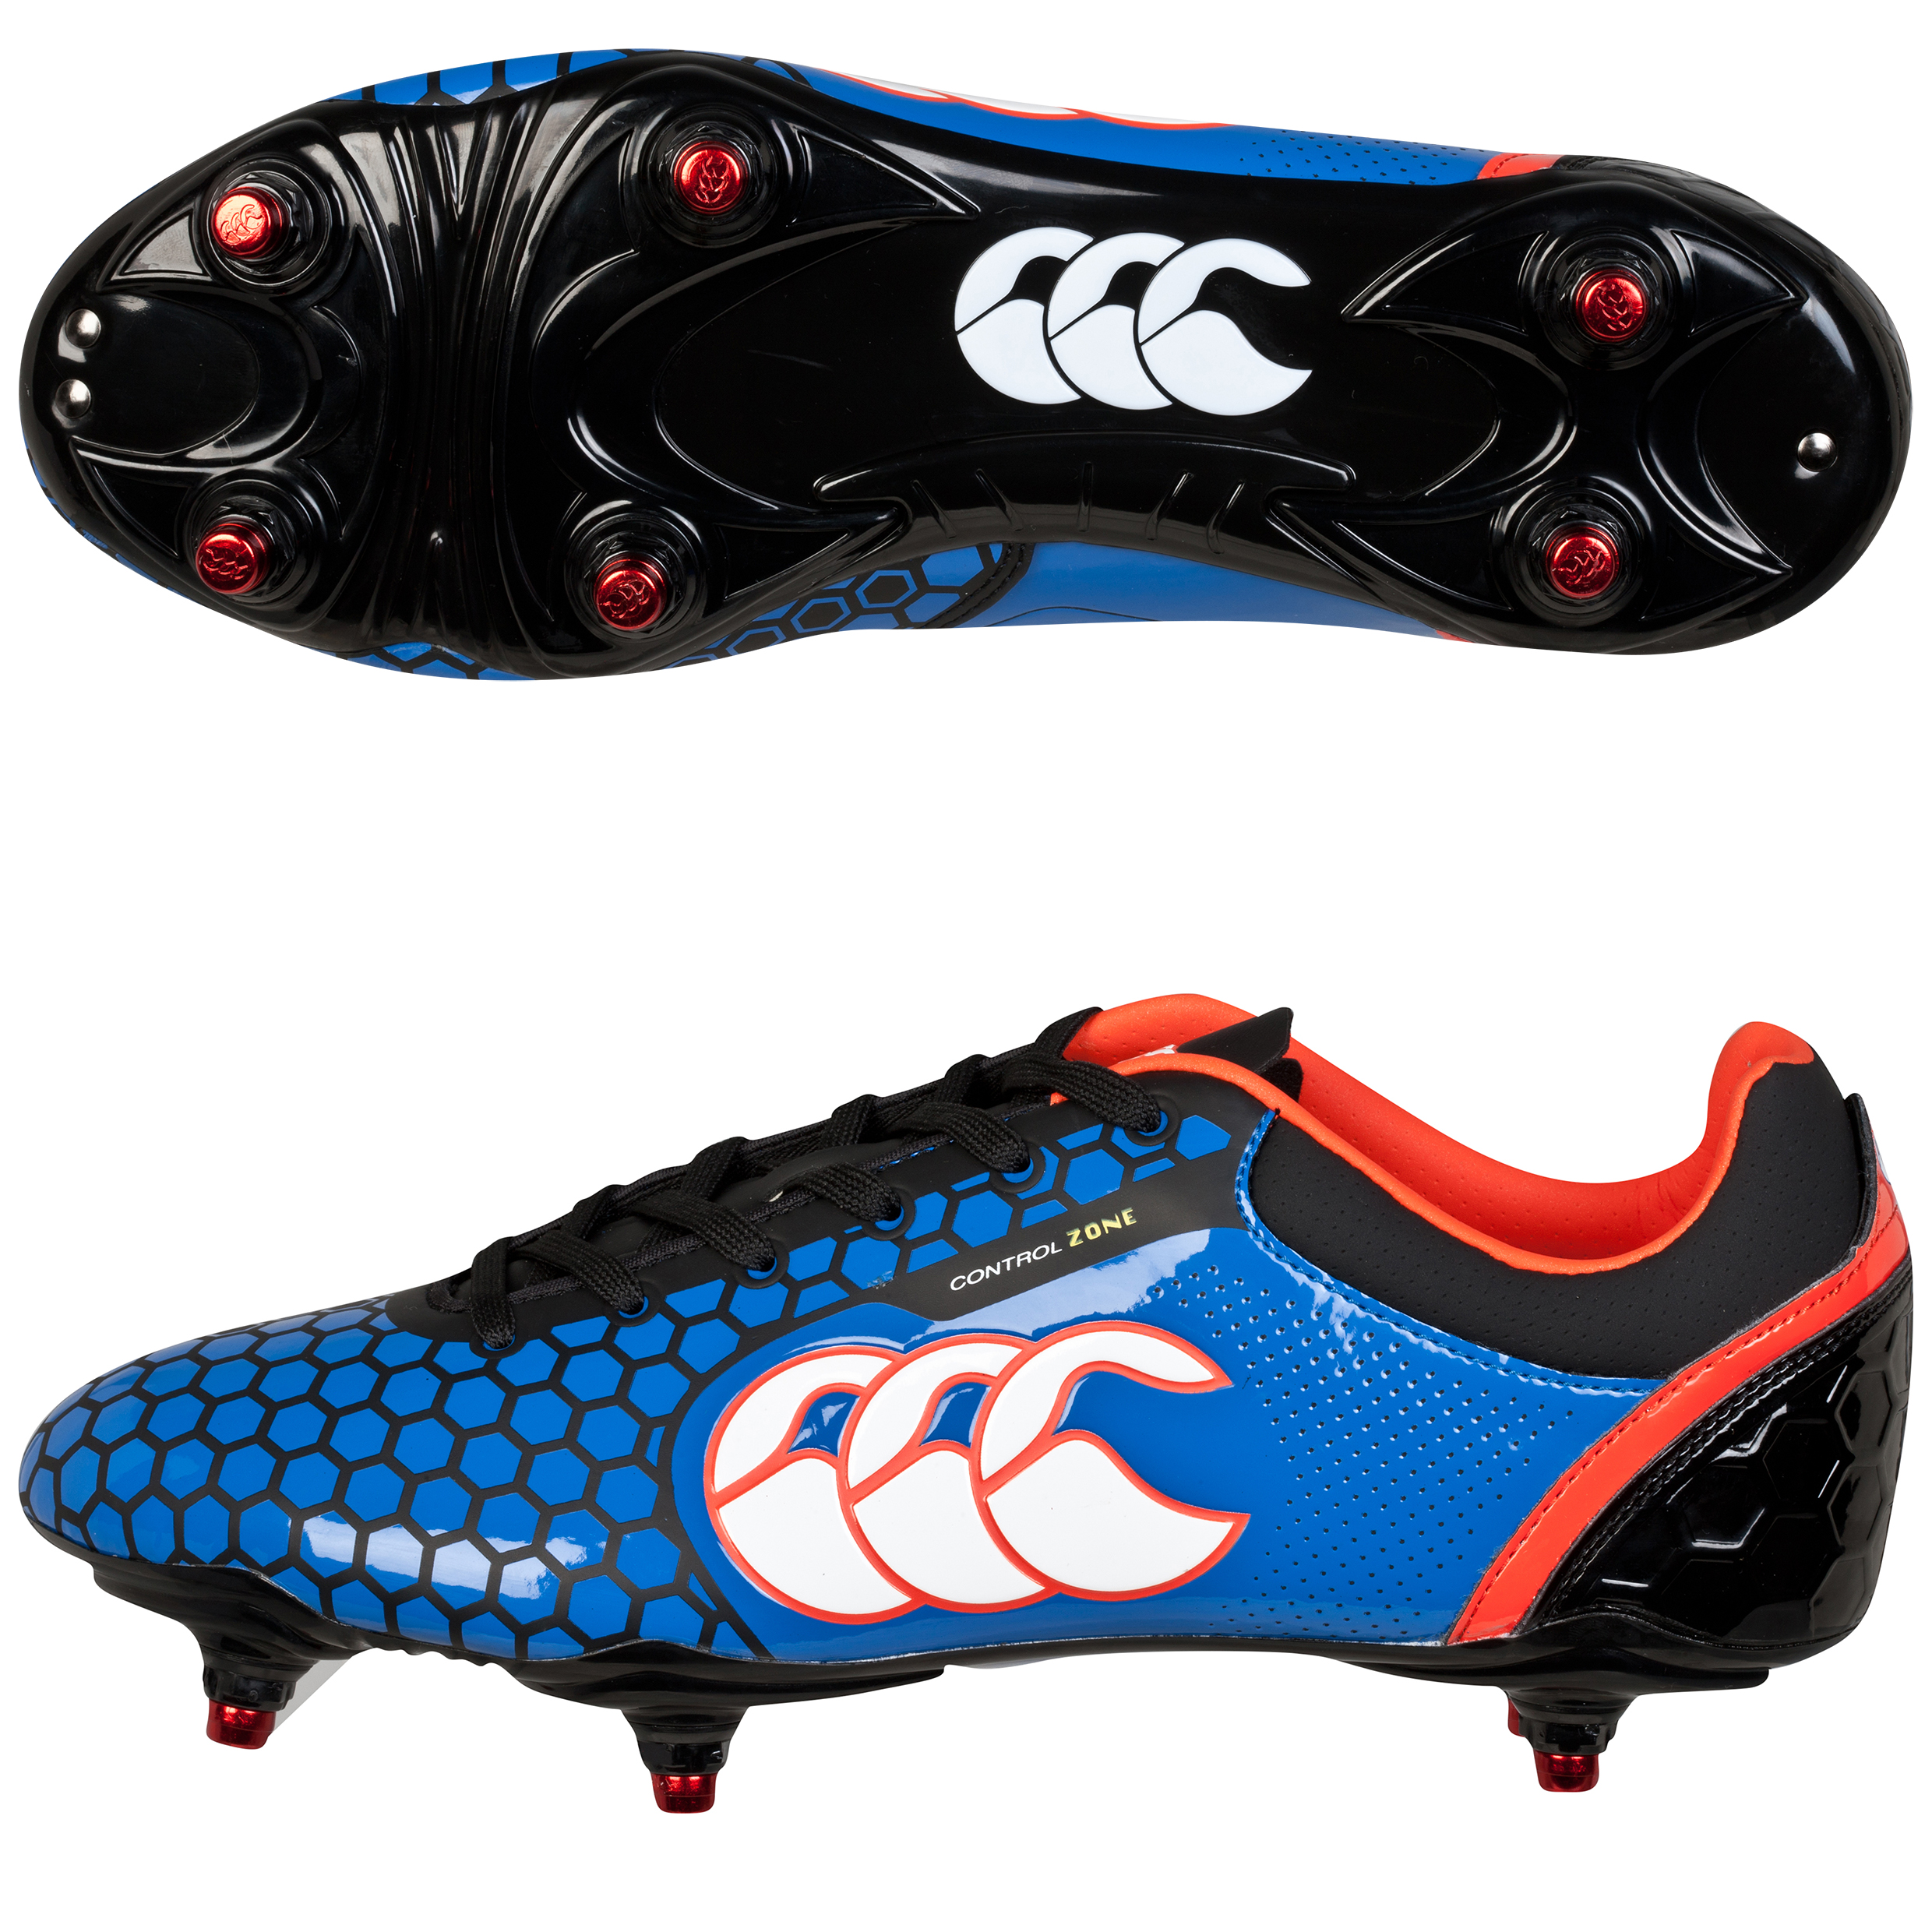 e85a9bae7061 Buy Canterbury Control Rugby Boots - compare prices